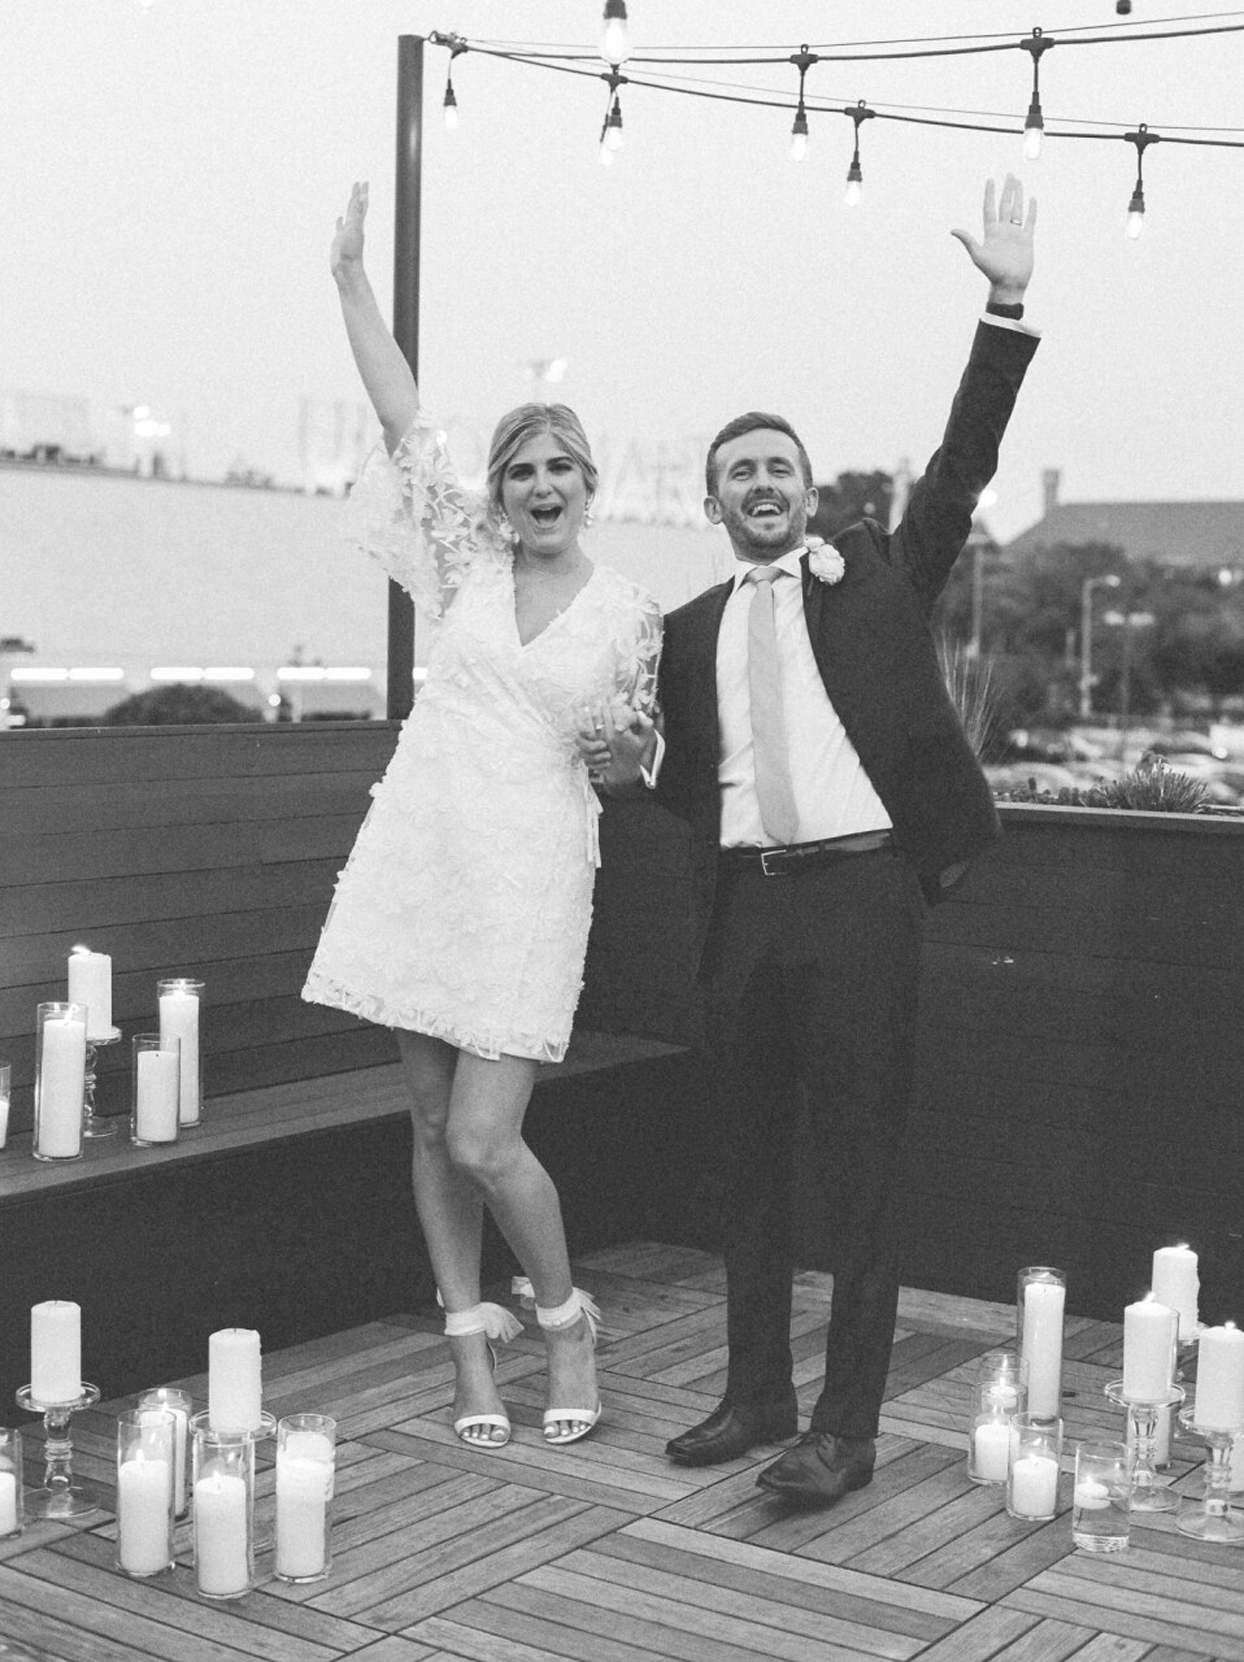 bride and groom celebrate after exchanging vows